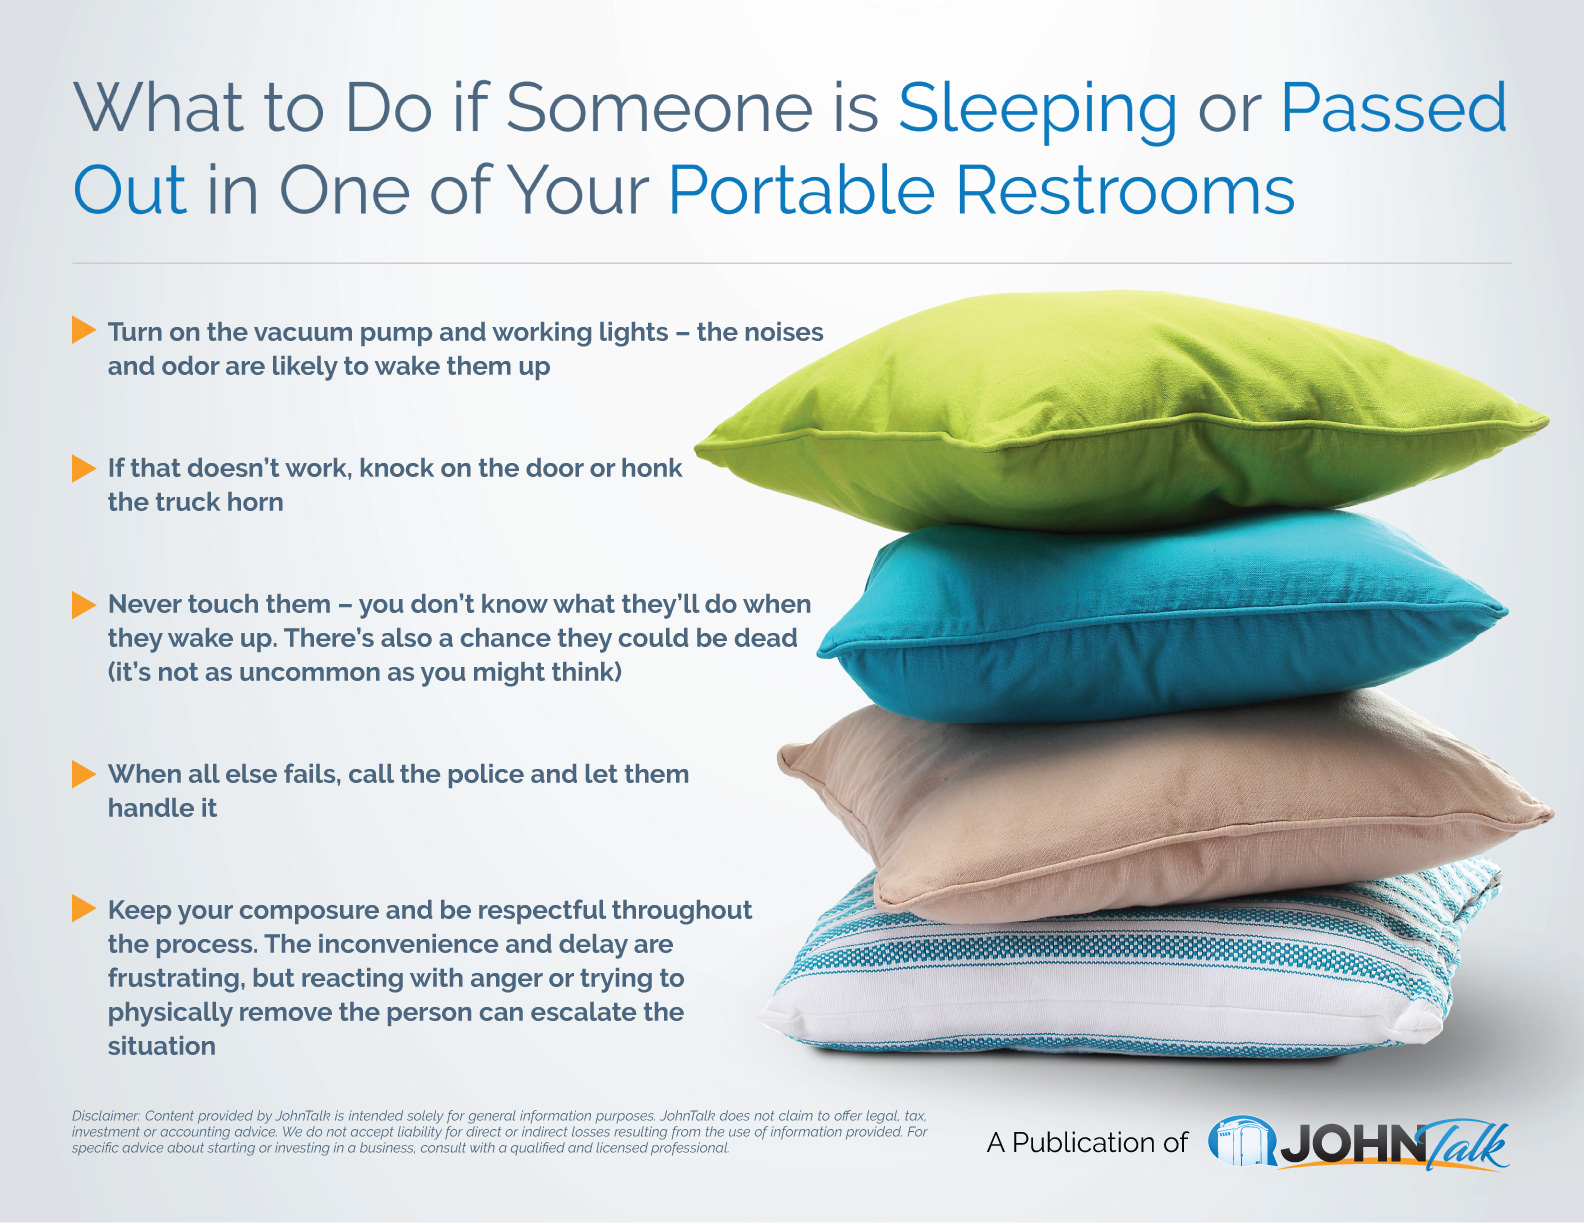 What to Do if Someone is Sleeping or Passed Out in One of Your Portable Restrooms